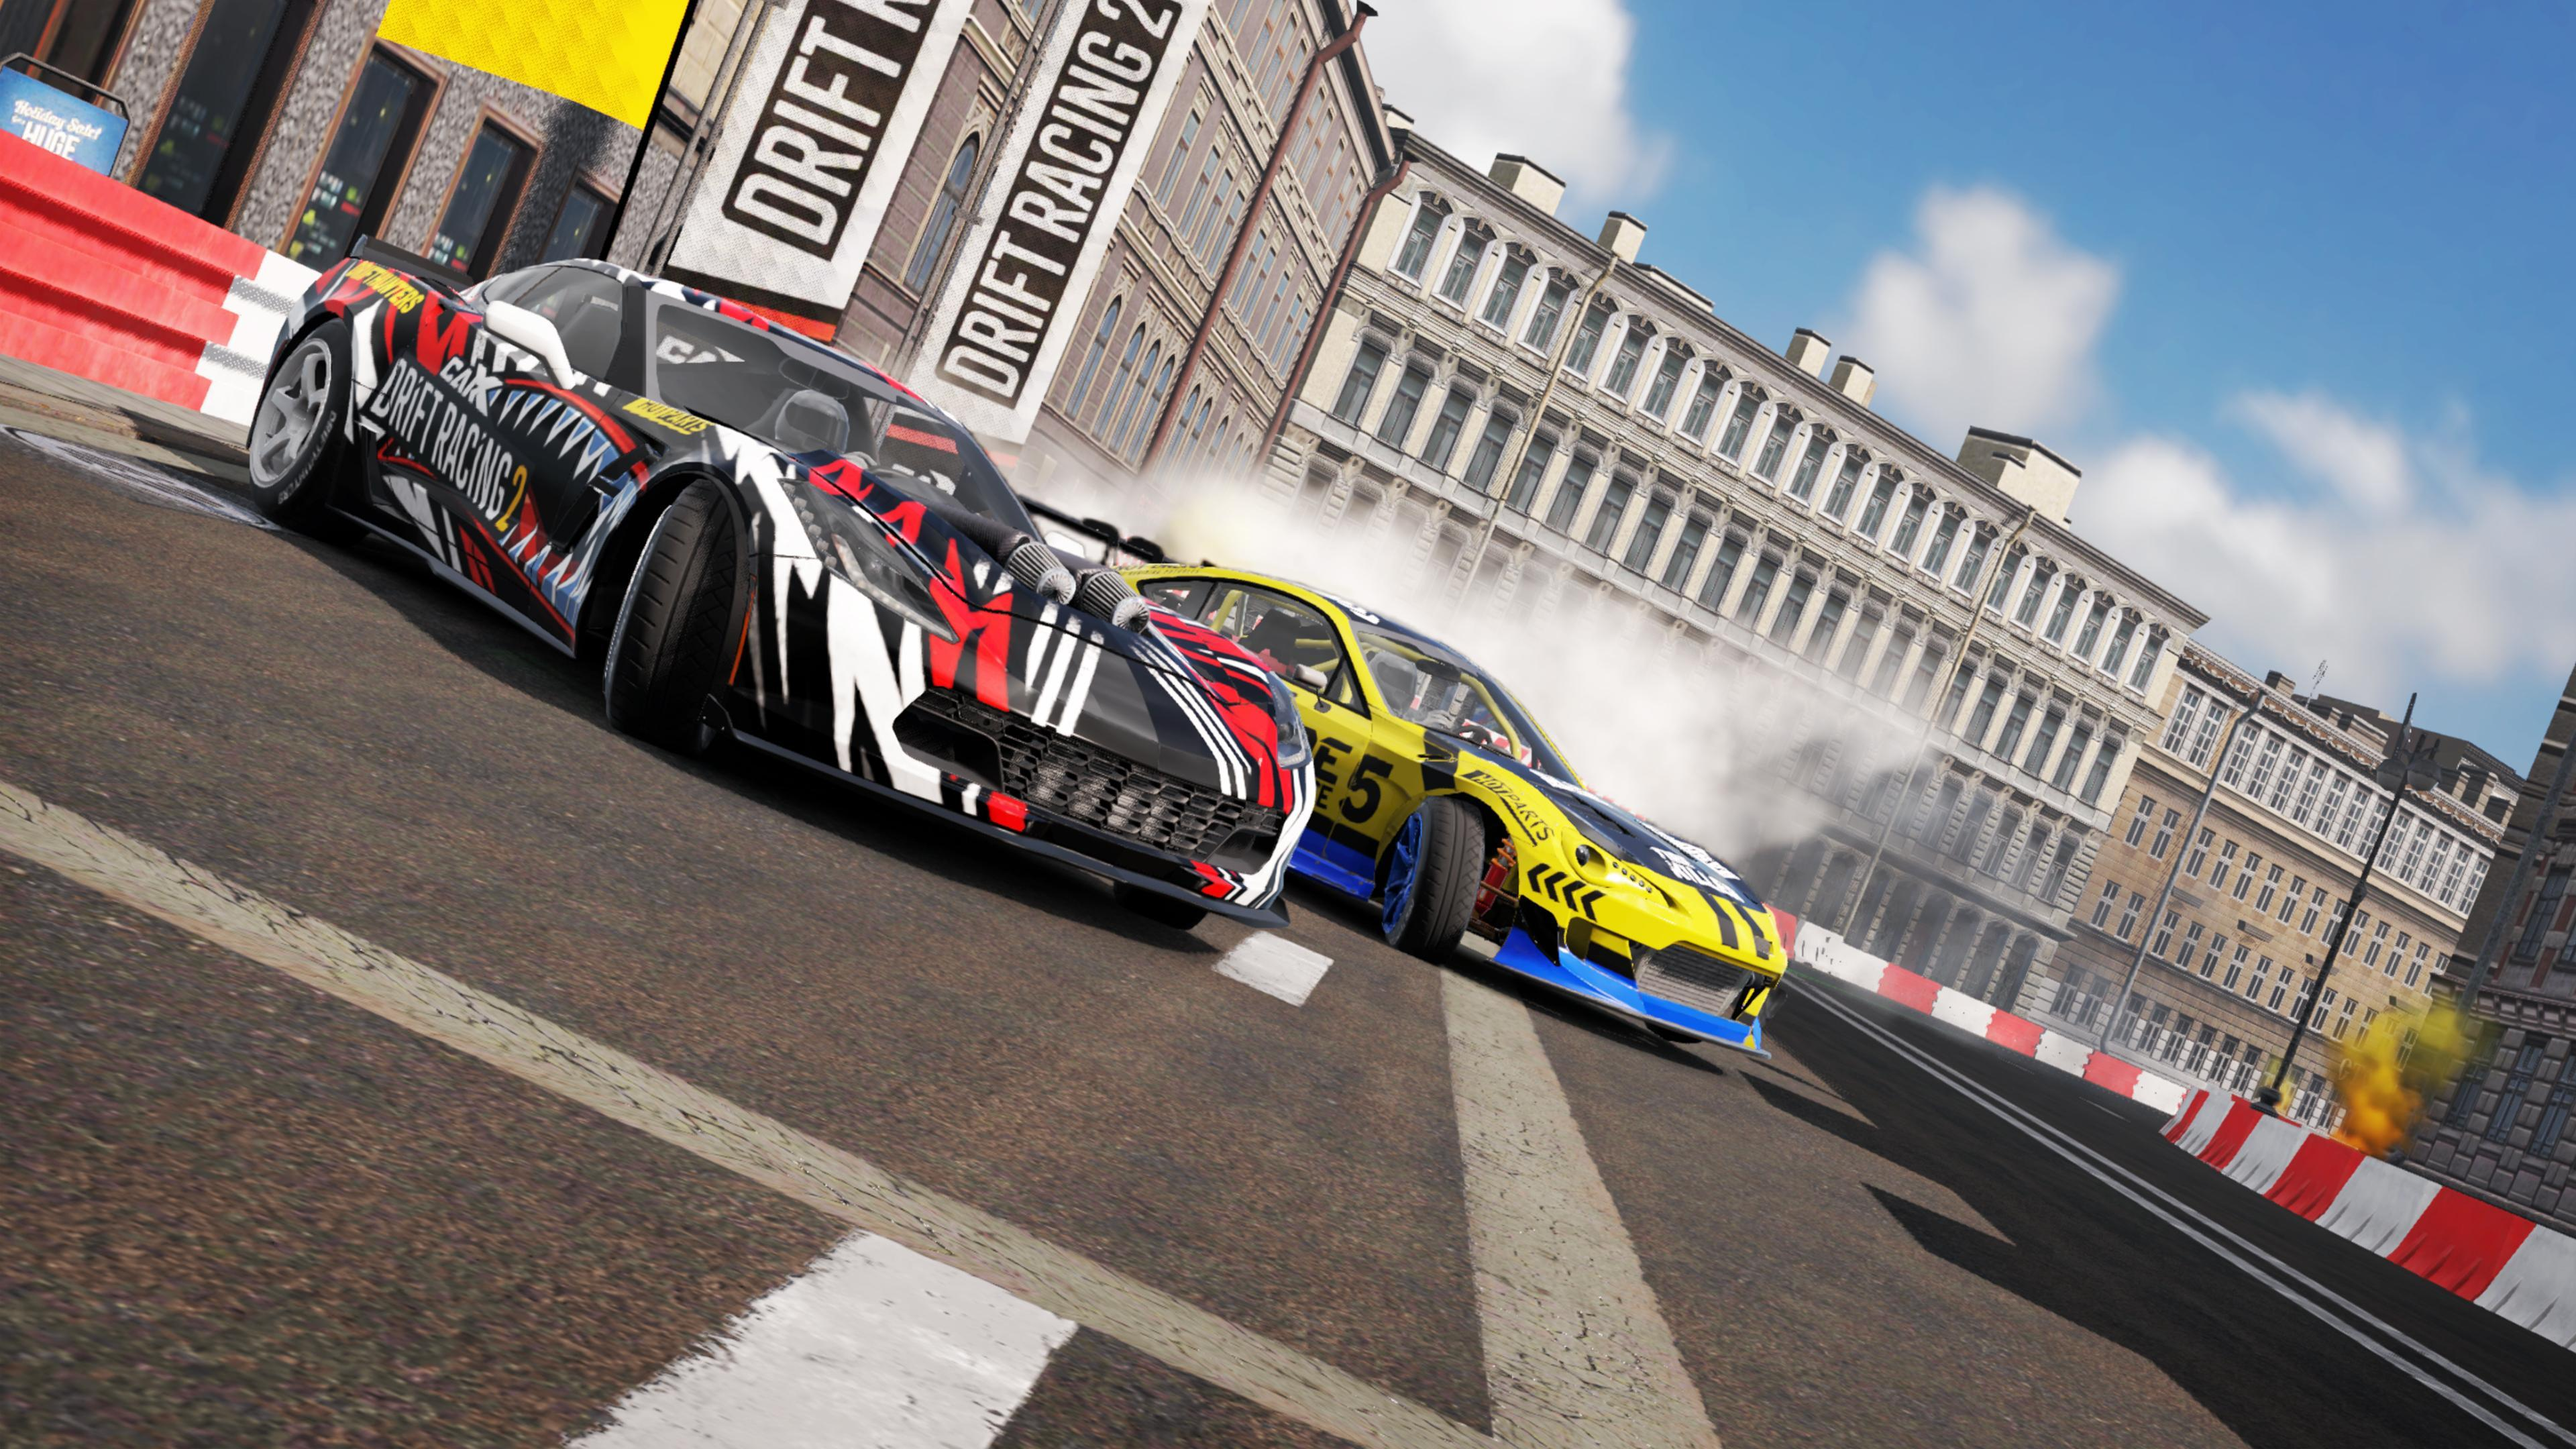 Carx Drift Racing 2 For Android Apk Download